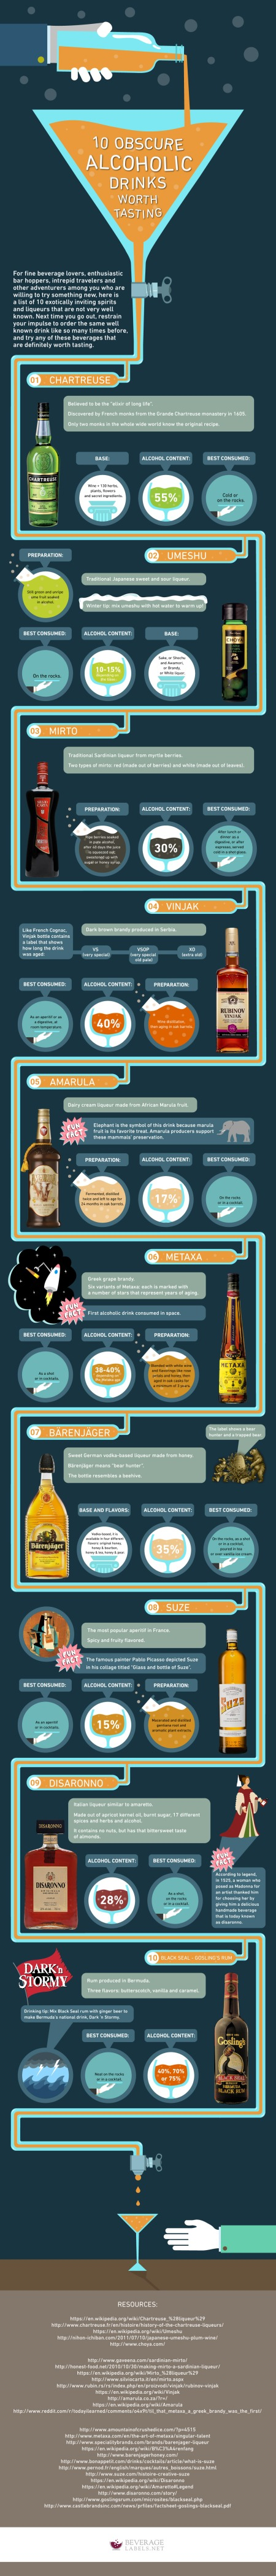 4-obscure-alcoholic-drinks-worth-Franklin-Liquors